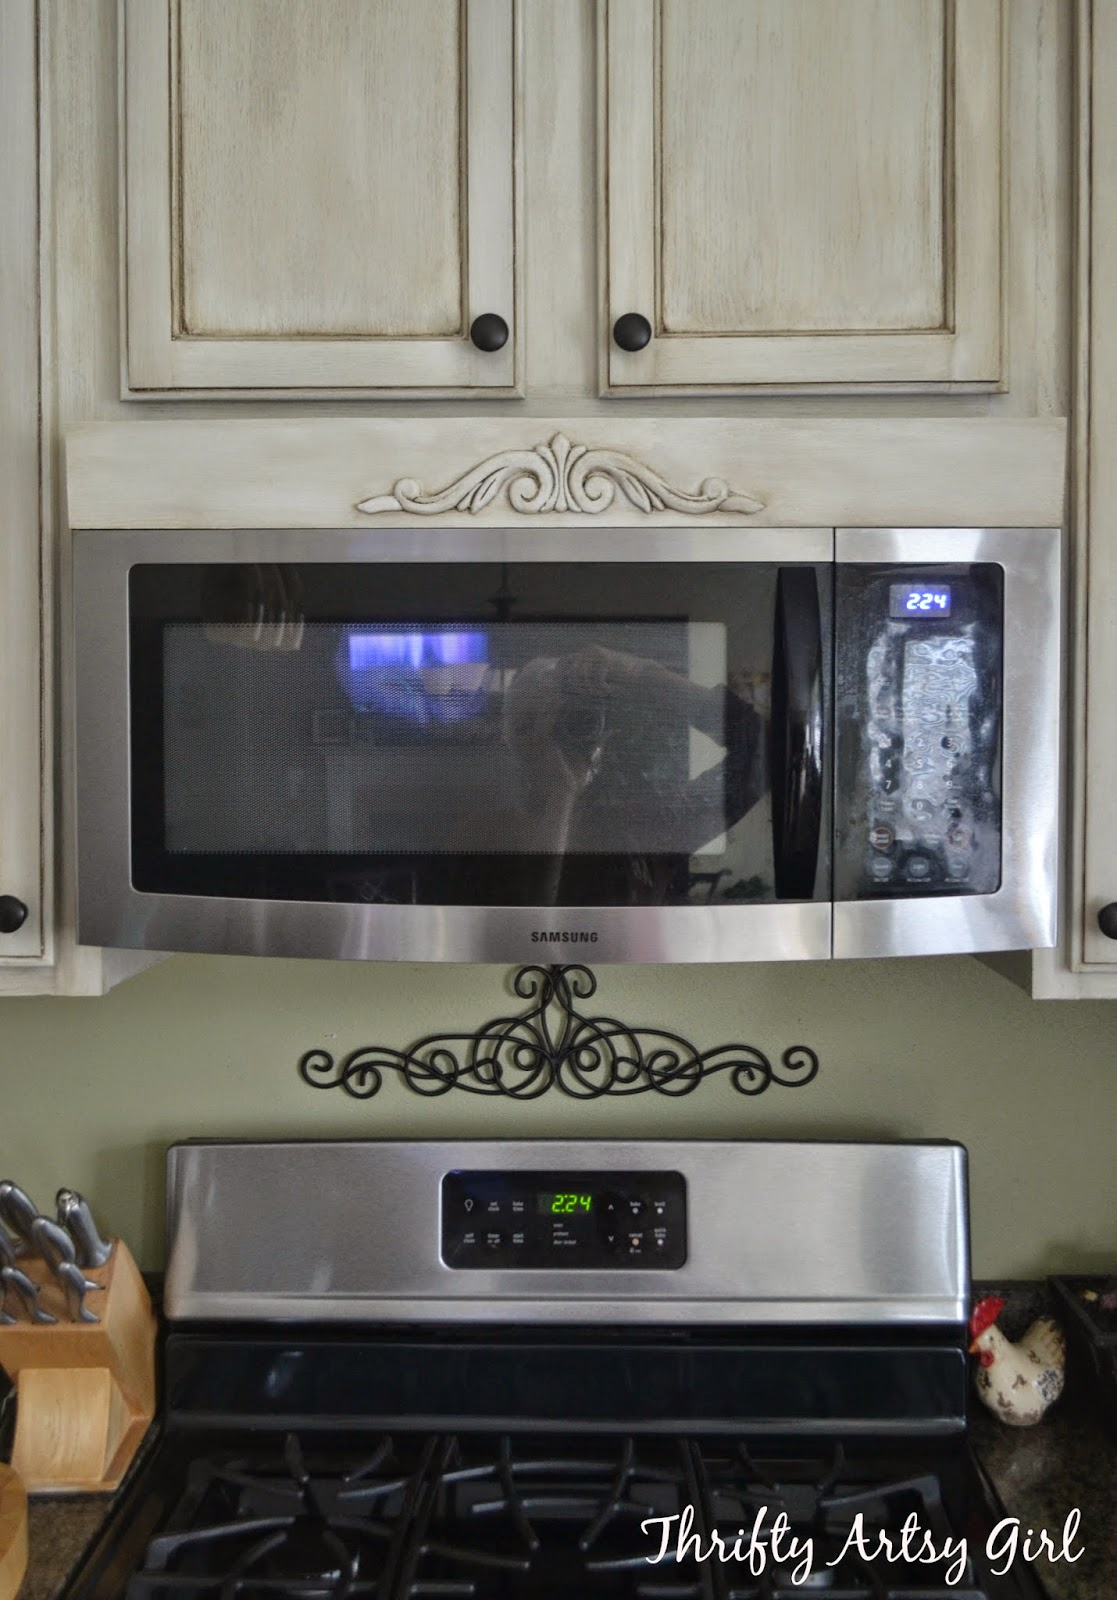 Thrifty Artsy Girl Diy Tuscan Above The Range Microwave